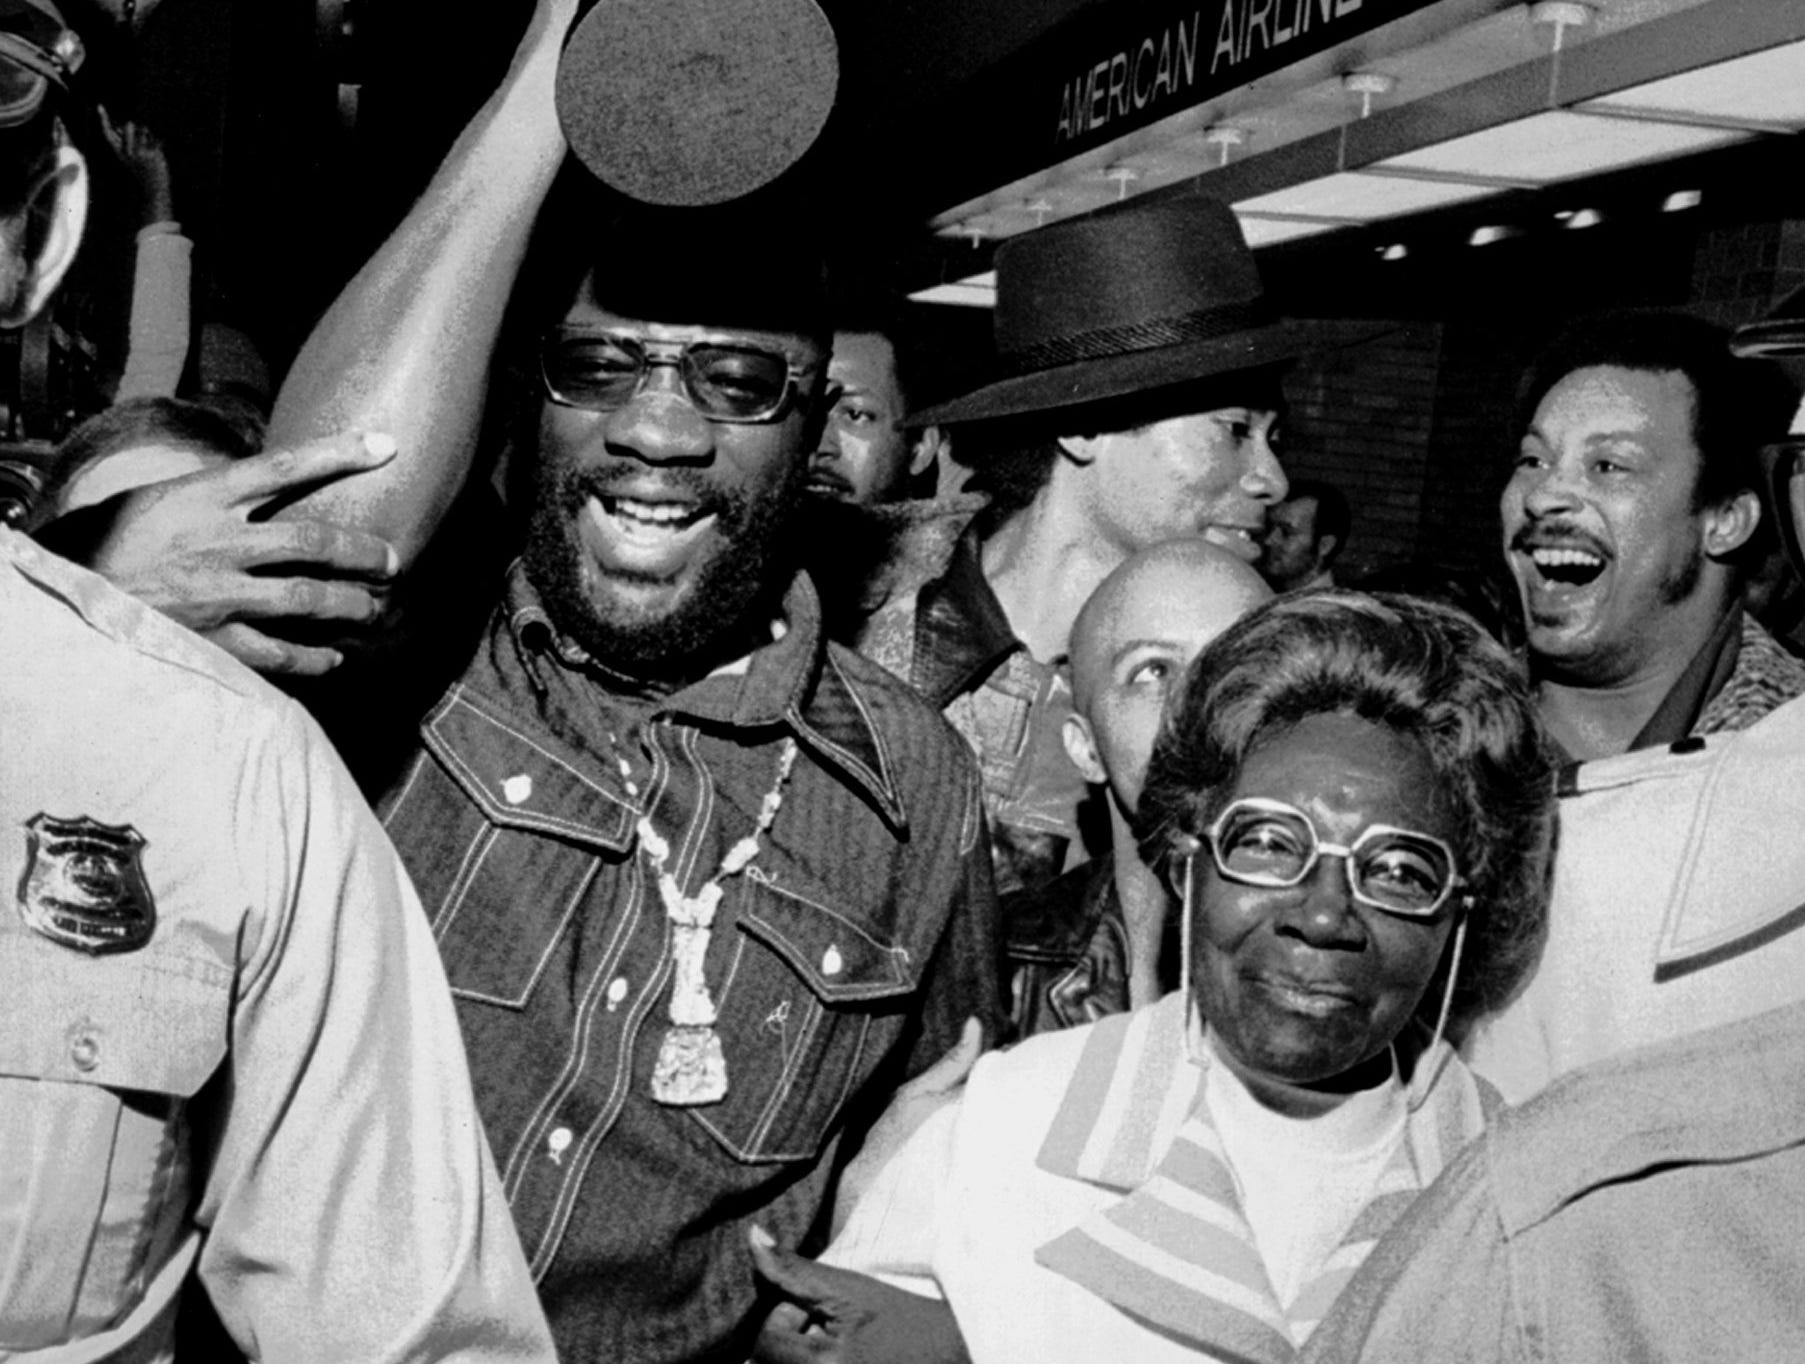 """With his Oscar in one hand and """"Mama Wade"""" in the other, Academy Award winner Isaac Hayes came home to Memphis Tuesday evening, April 11, 1972. At his side throughout the official welcoming ceremonies was Mrs. Rushia Wade, the grandmother to whom Hayes, 29, attributes his latest, and all other achievements.  A crowd estimated at 1,000 screaming admirers filled Memphis Metropolitan Airport to greet Hayes who won the Oscar for the best song, """"Theme from Shaft."""" In his acceptance in Hollywood the previous night, Hayes thanked his grandmother for """"keeping me on the paths of righteousness"""" and said that the Oscar was an 80th birthday present for her. Isaac Hayes was born on 20 Aug 42."""